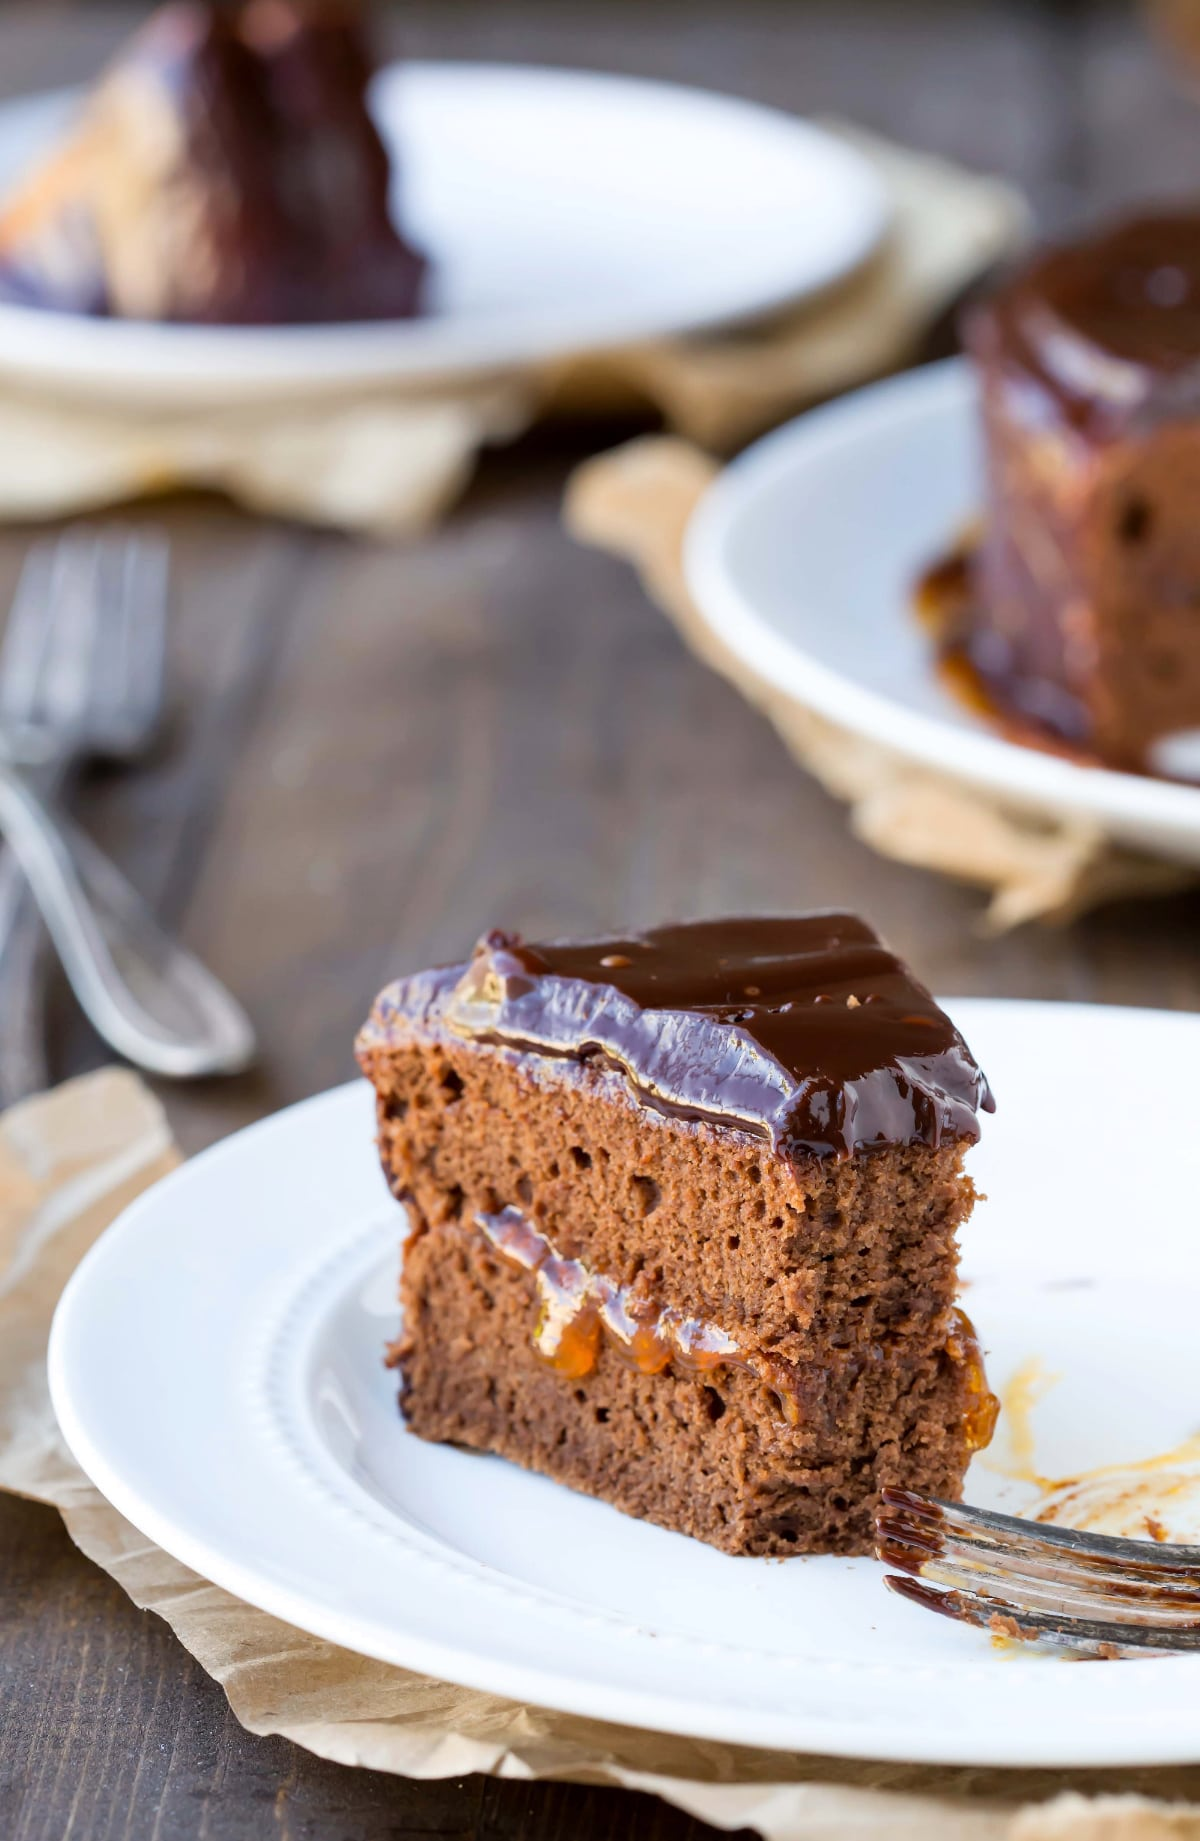 slice of Sacher Torte on a plate with a bite missing